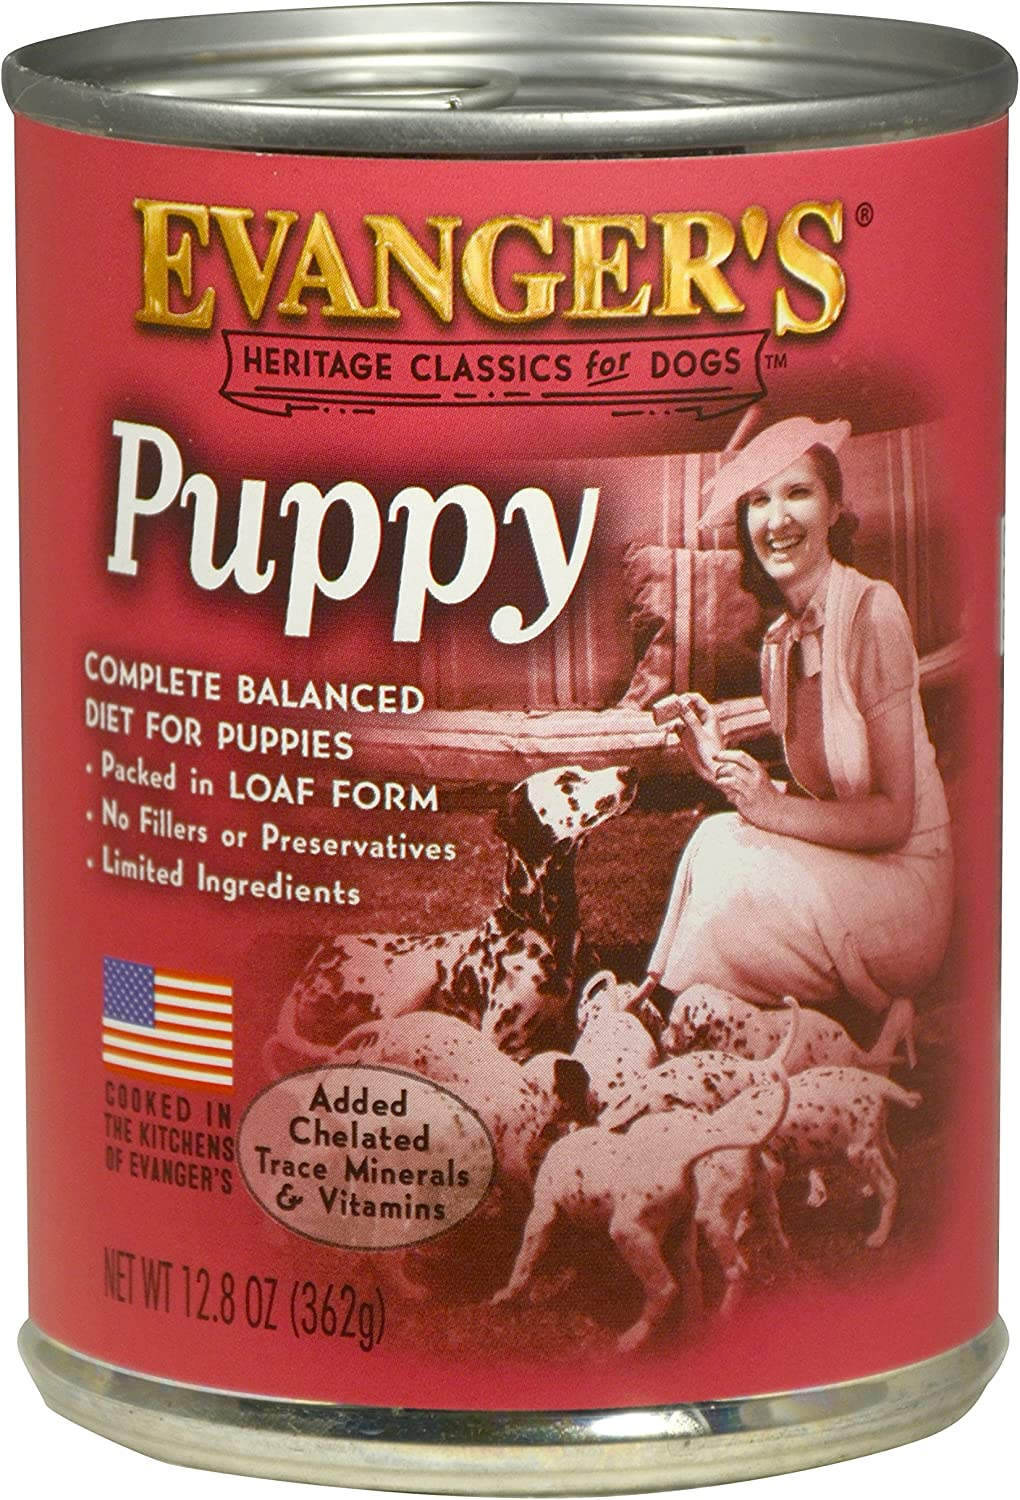 Evanger's Heritage Classic Puppy and Underweight Dogs Recipe, 12 x 12.8 oz cans